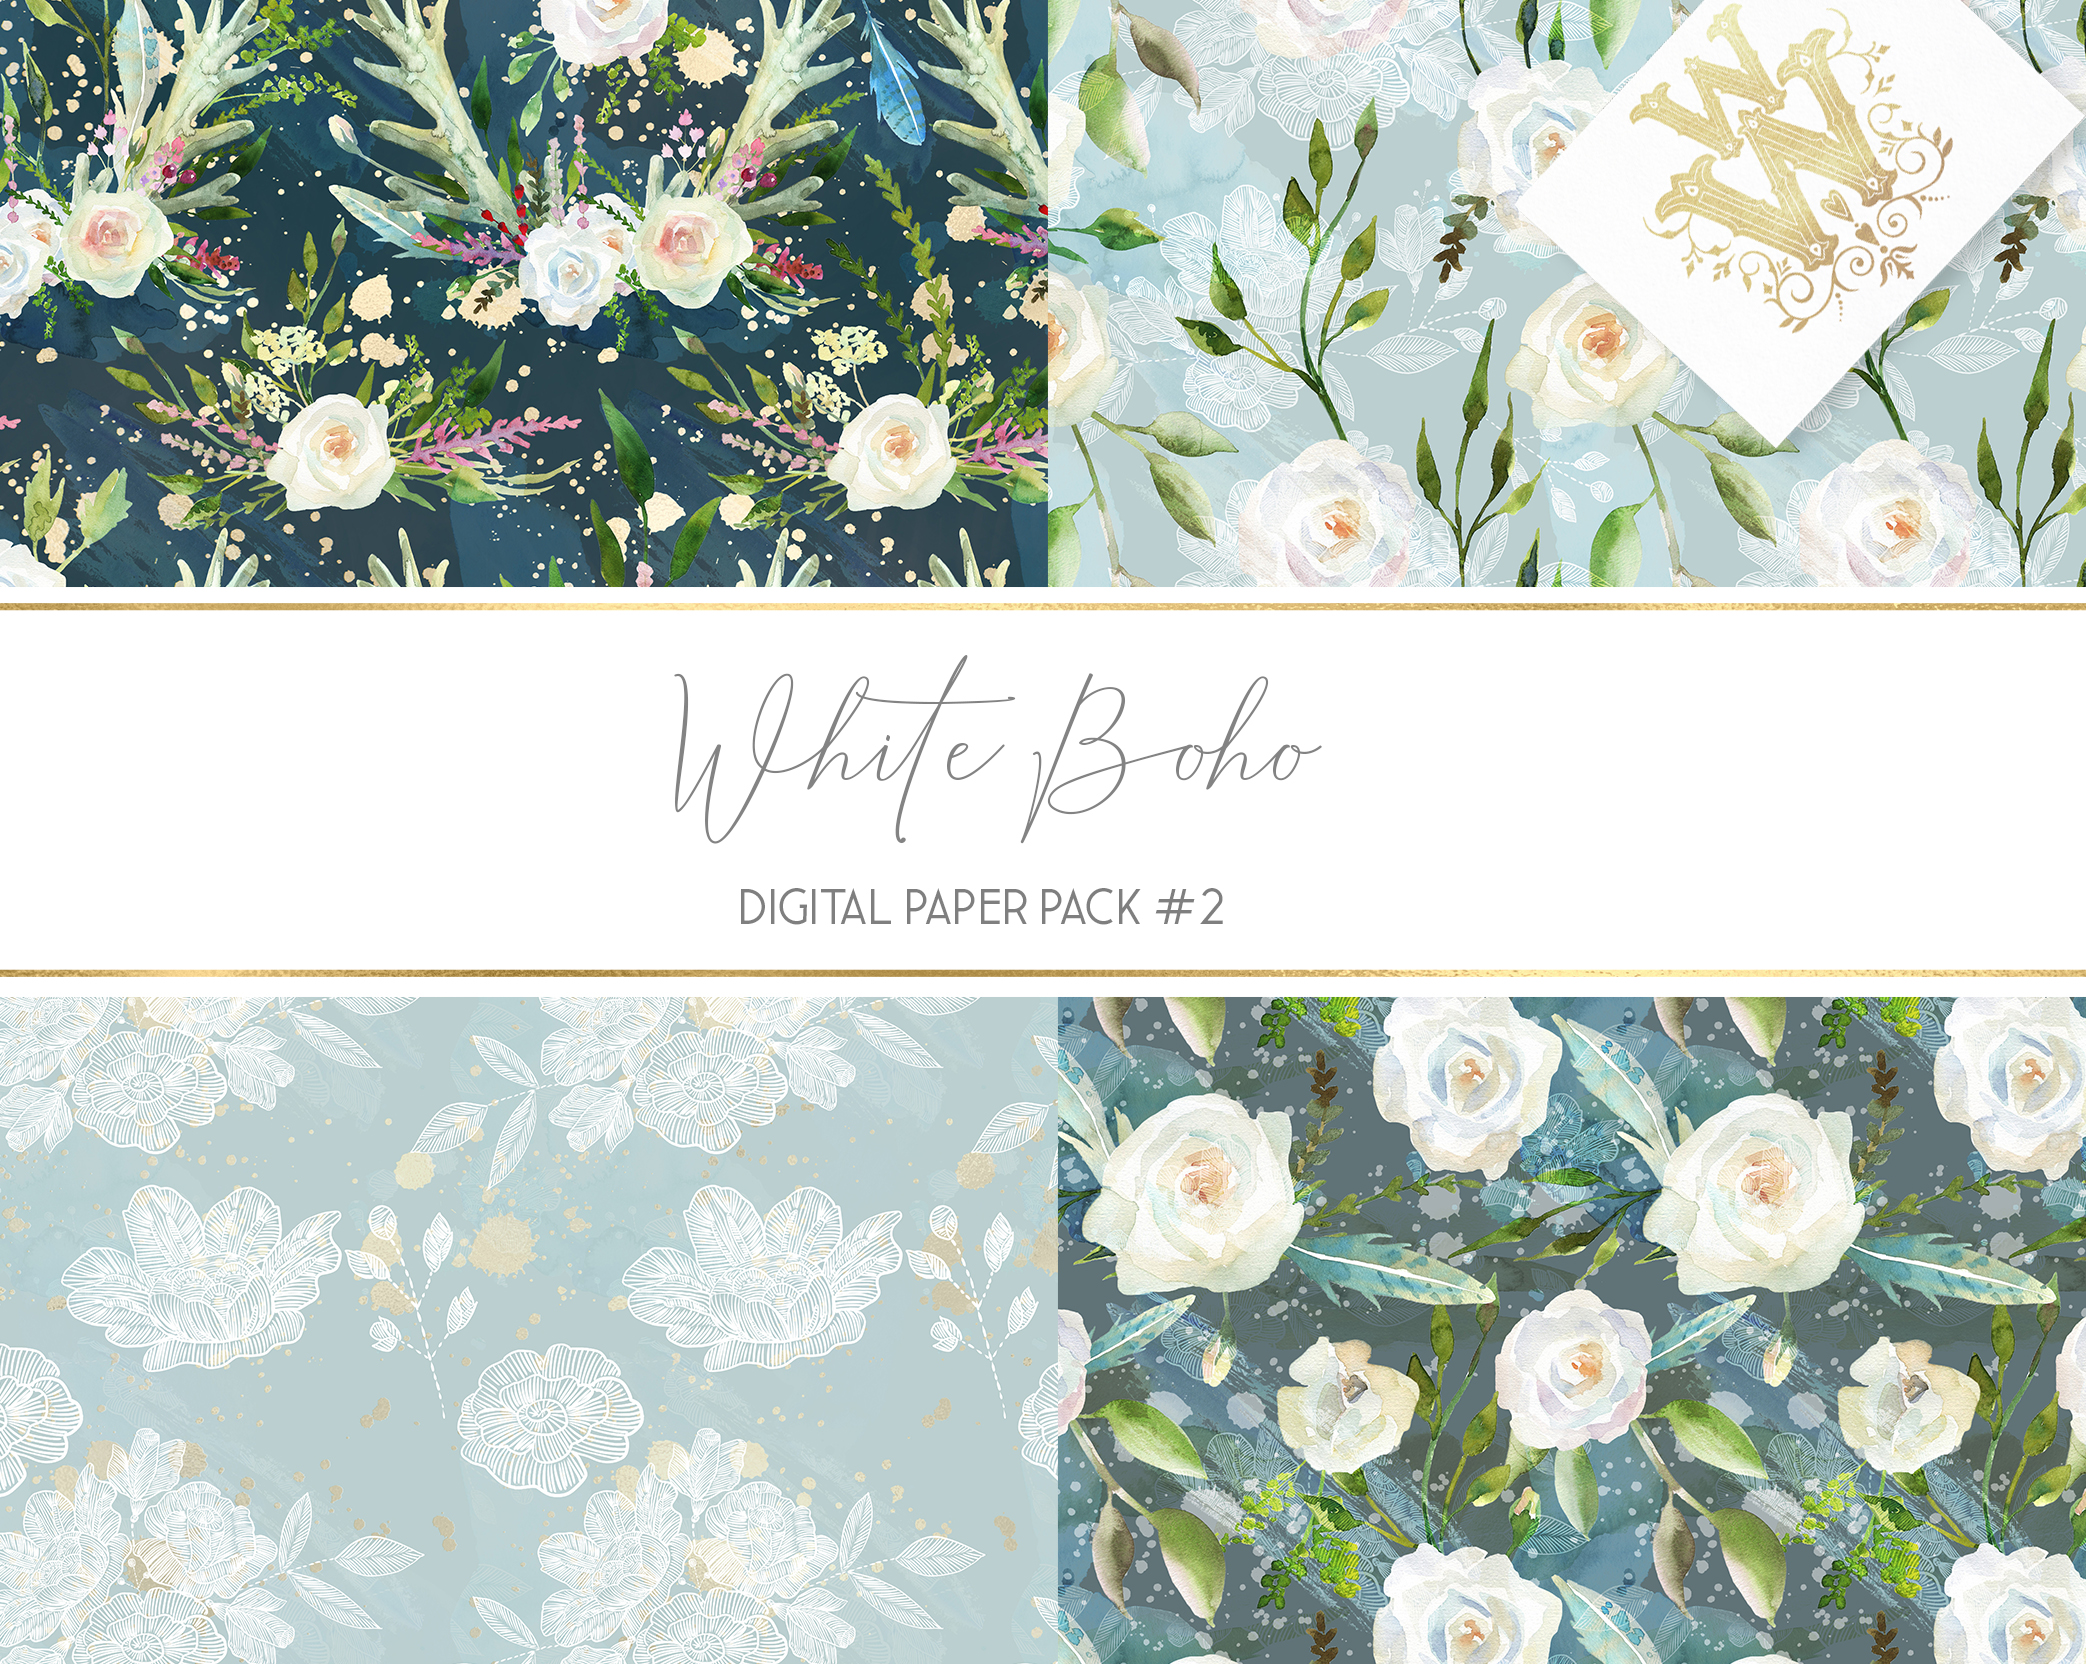 Boho chic digital paper pack, watercolor floral seamless example image 2